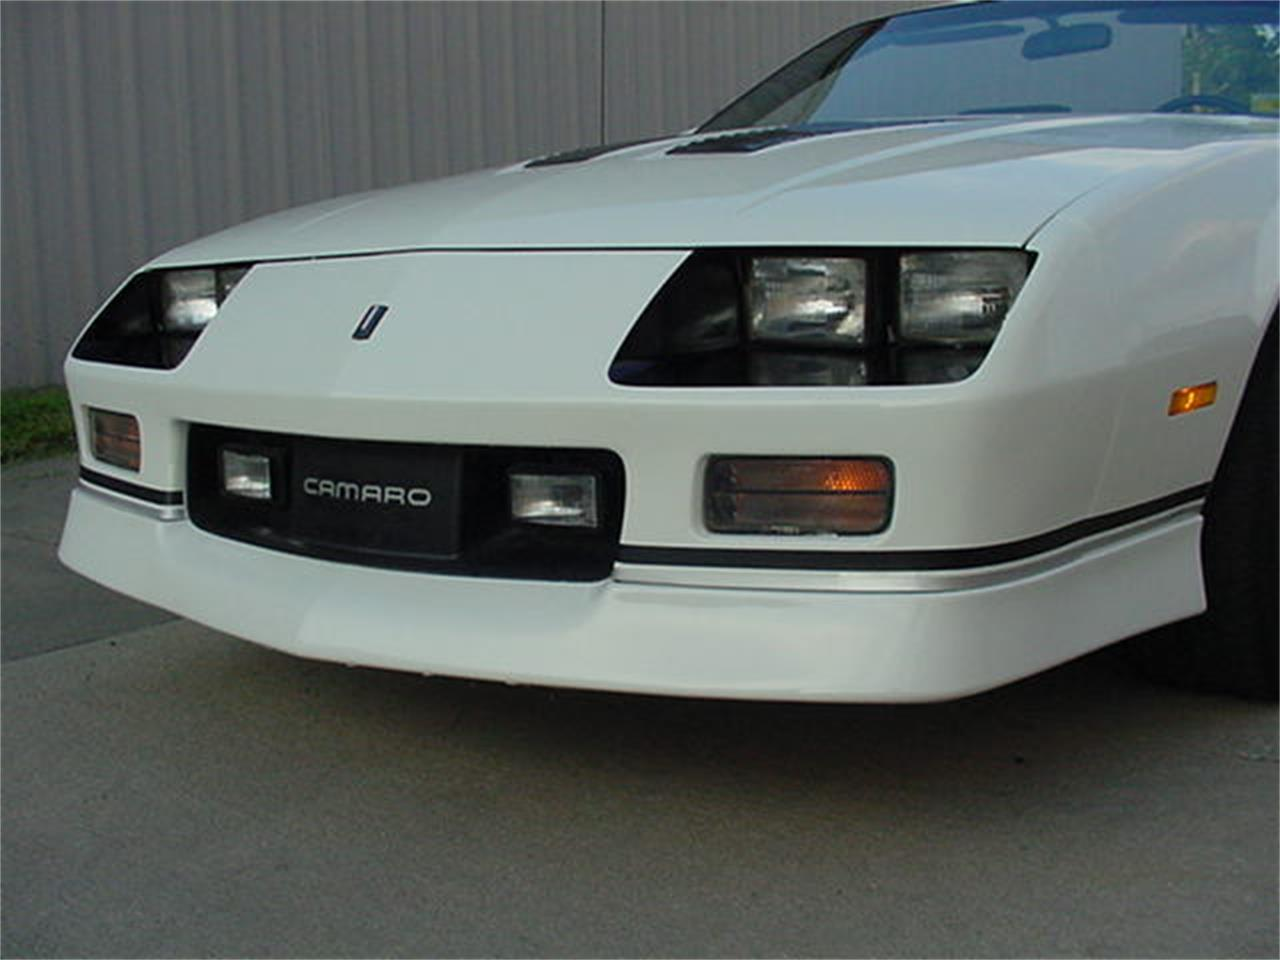 1989 Chevrolet Camaro IROC-Z for sale in Milford, OH – photo 2